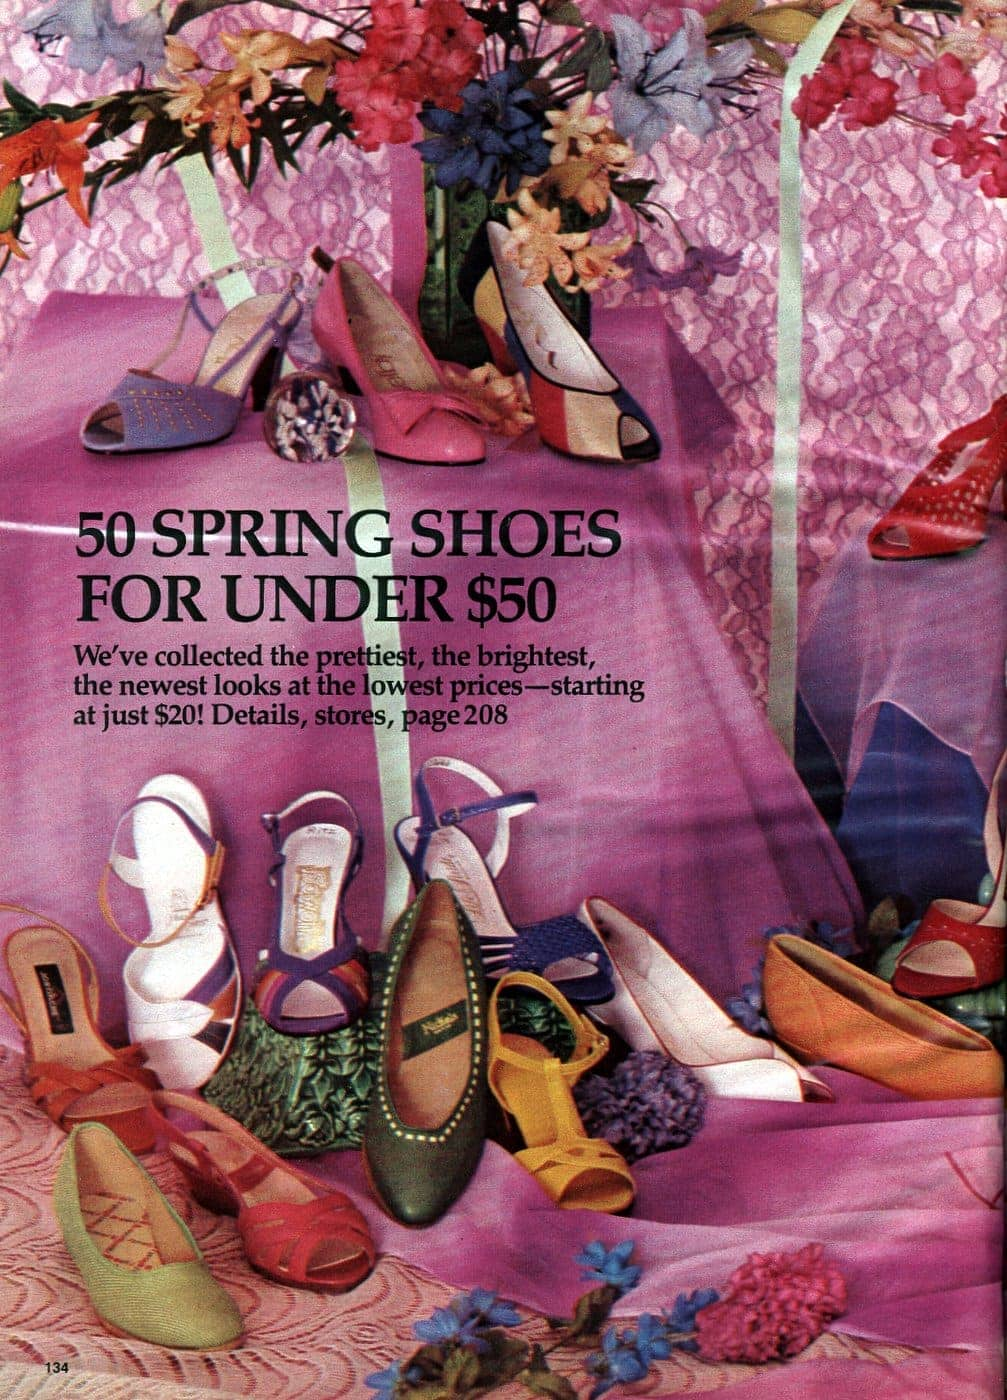 Retro spring shoes from the 80s - 1982 (1)